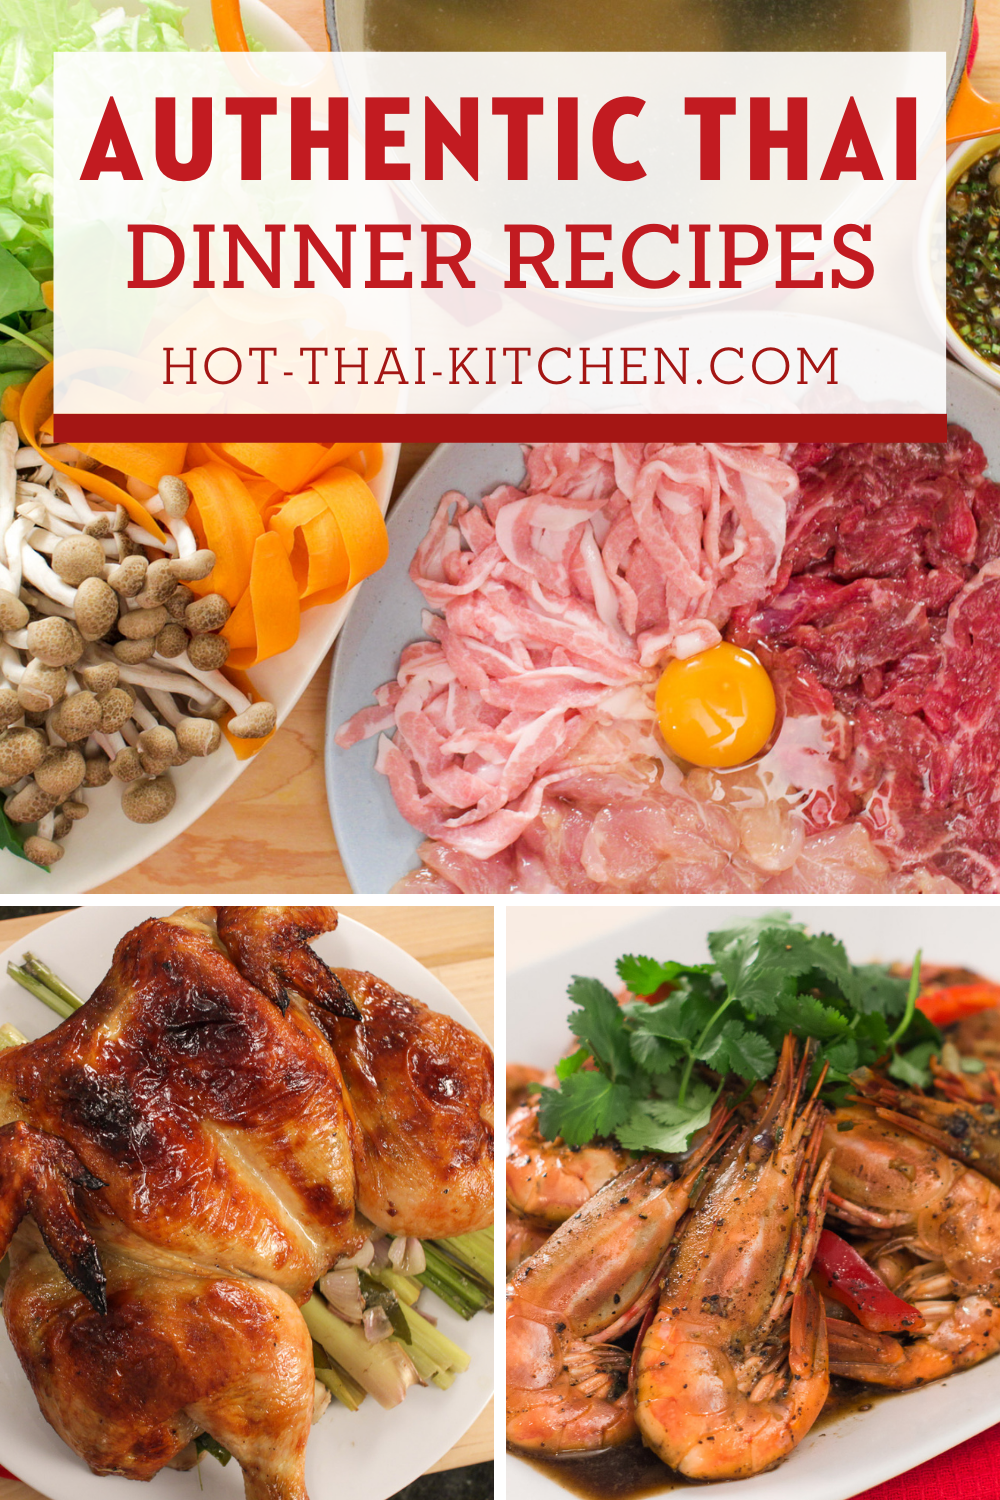 580 Pai S Kitchen Recipe And Videos In 2021 Recipes International Recipes Kitchen Recipes